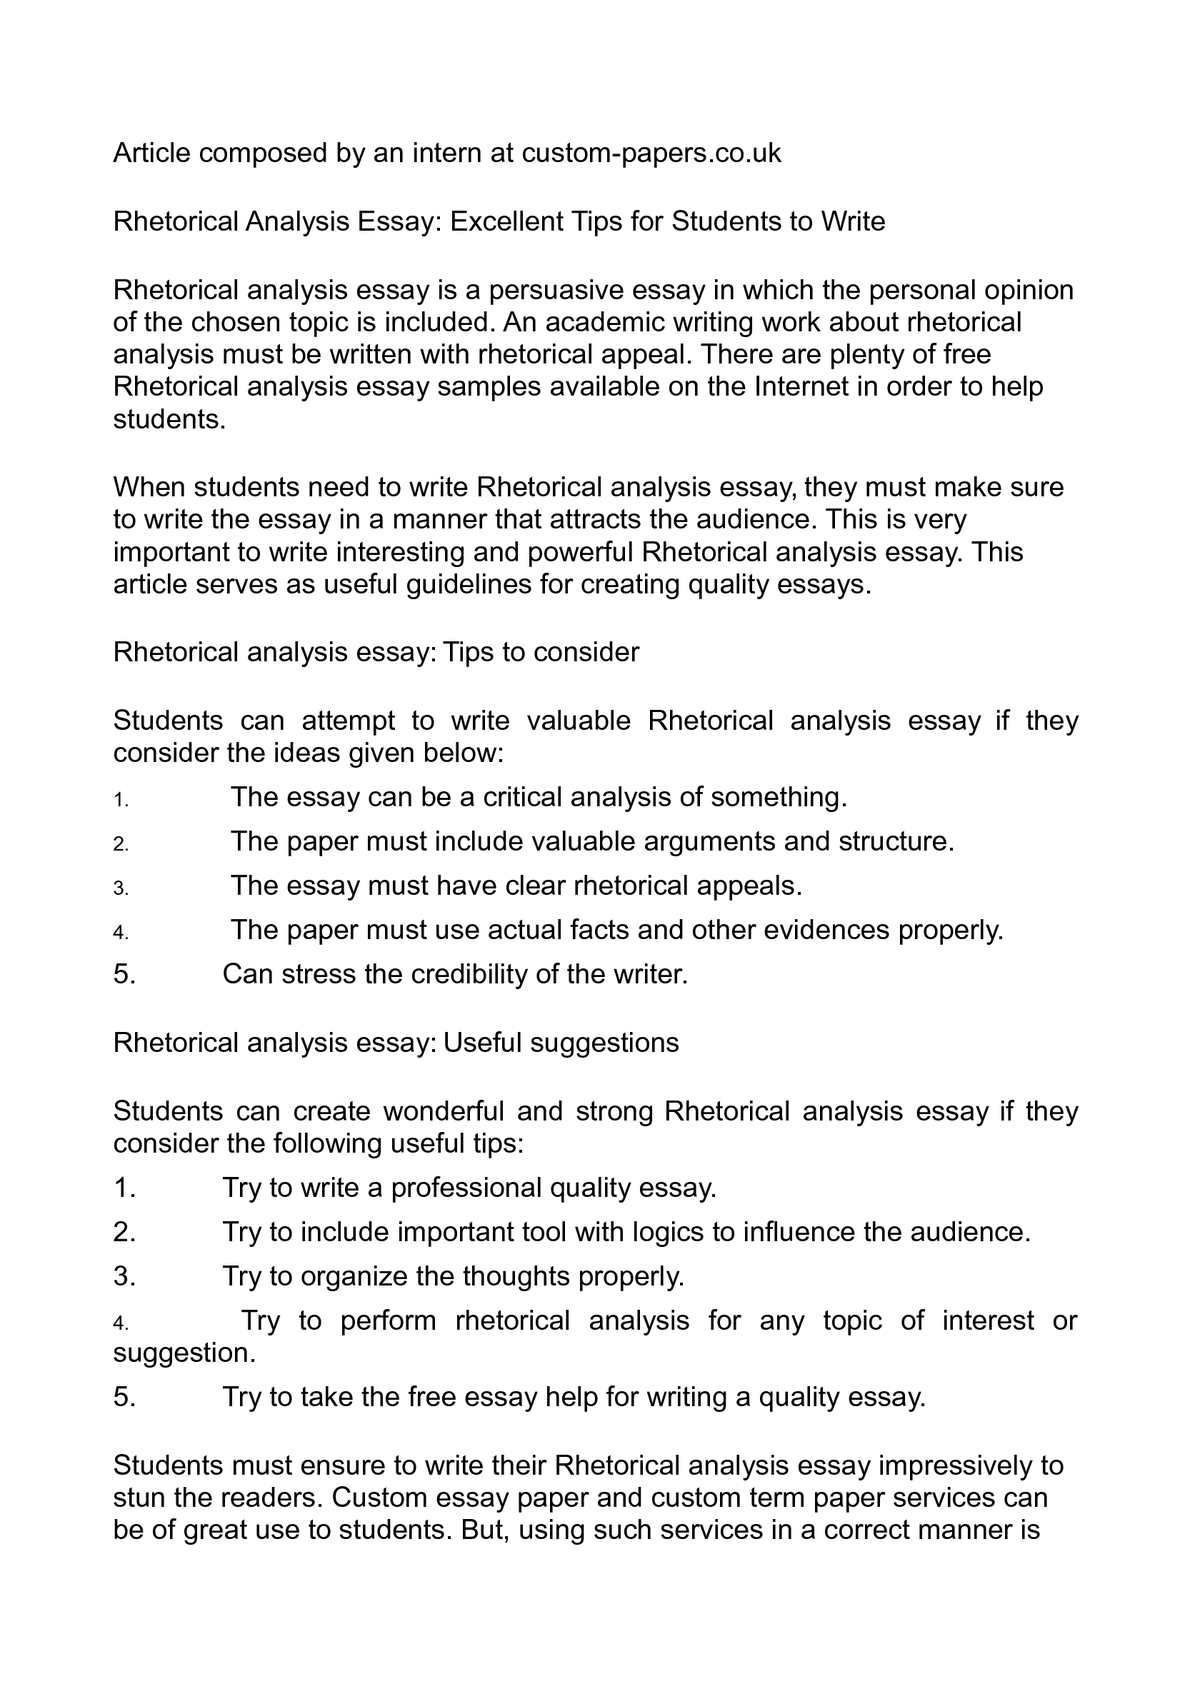 writing rhetorical analysis essay writing rhetorical analysis essay tk - Example Of A Rhetorical Essay